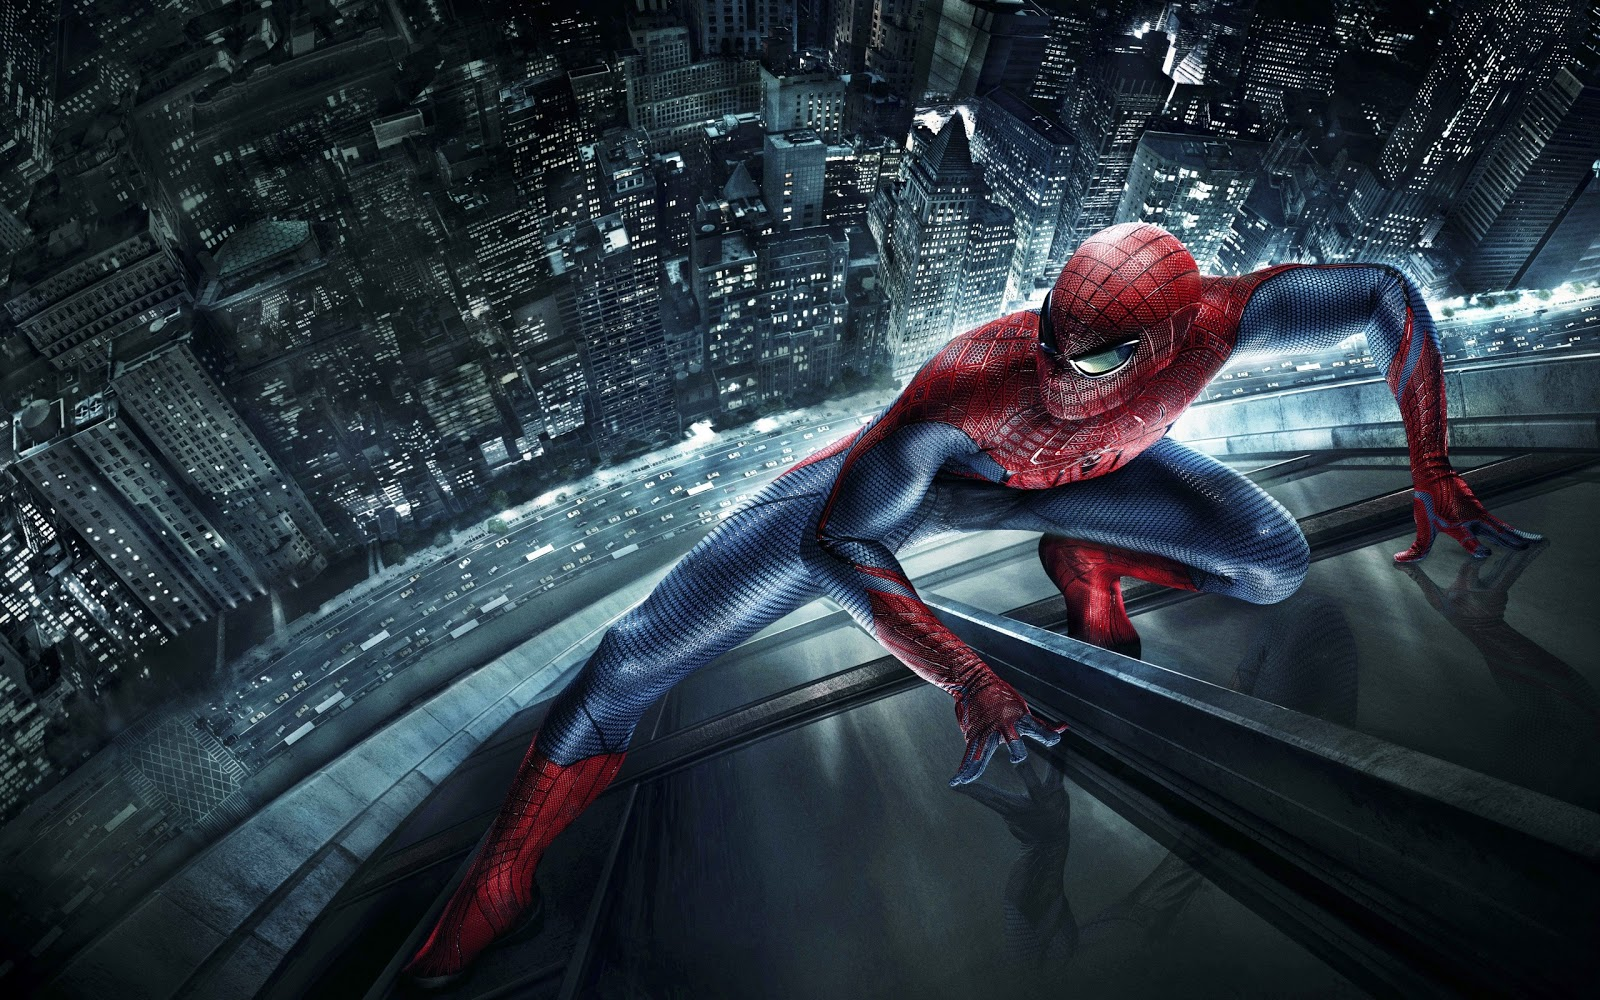 Spider Man Movie Wallpaper HD 417.21 Kb